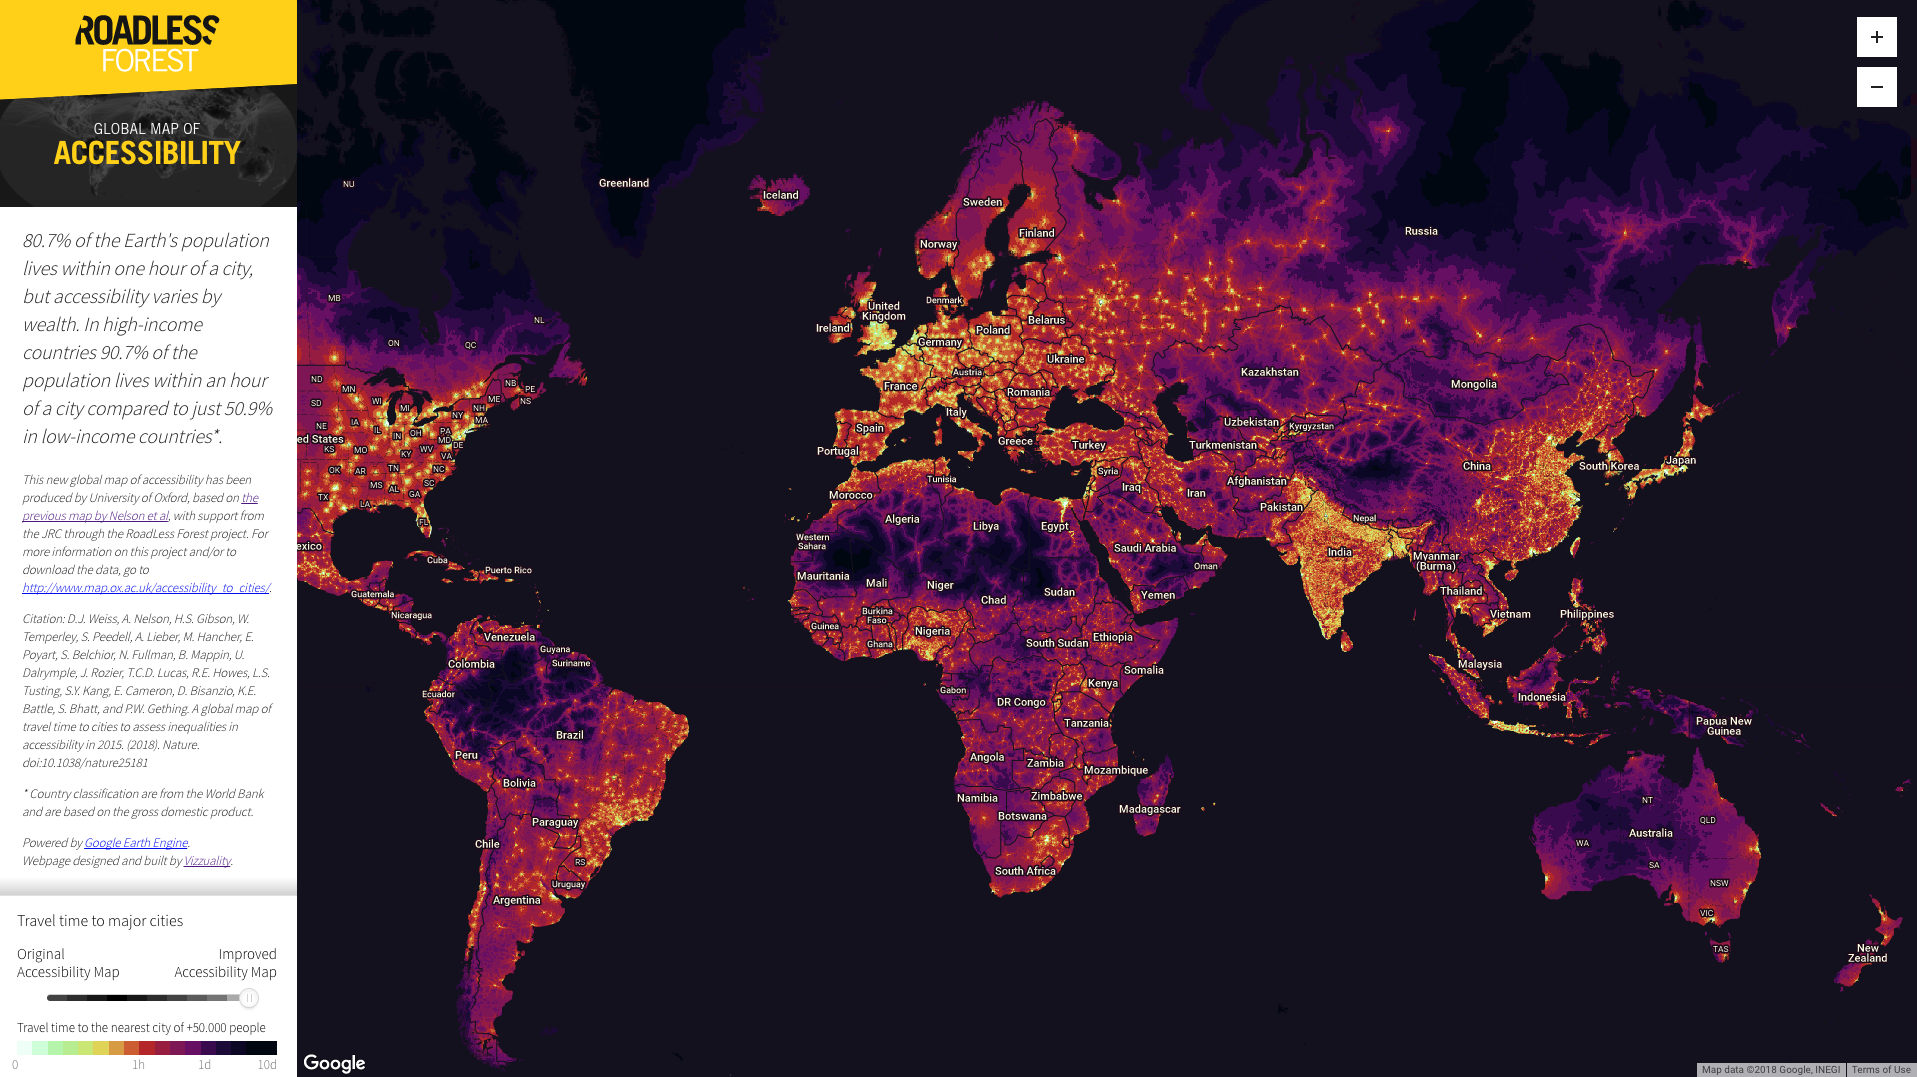 Global map of access to cities published by Nature